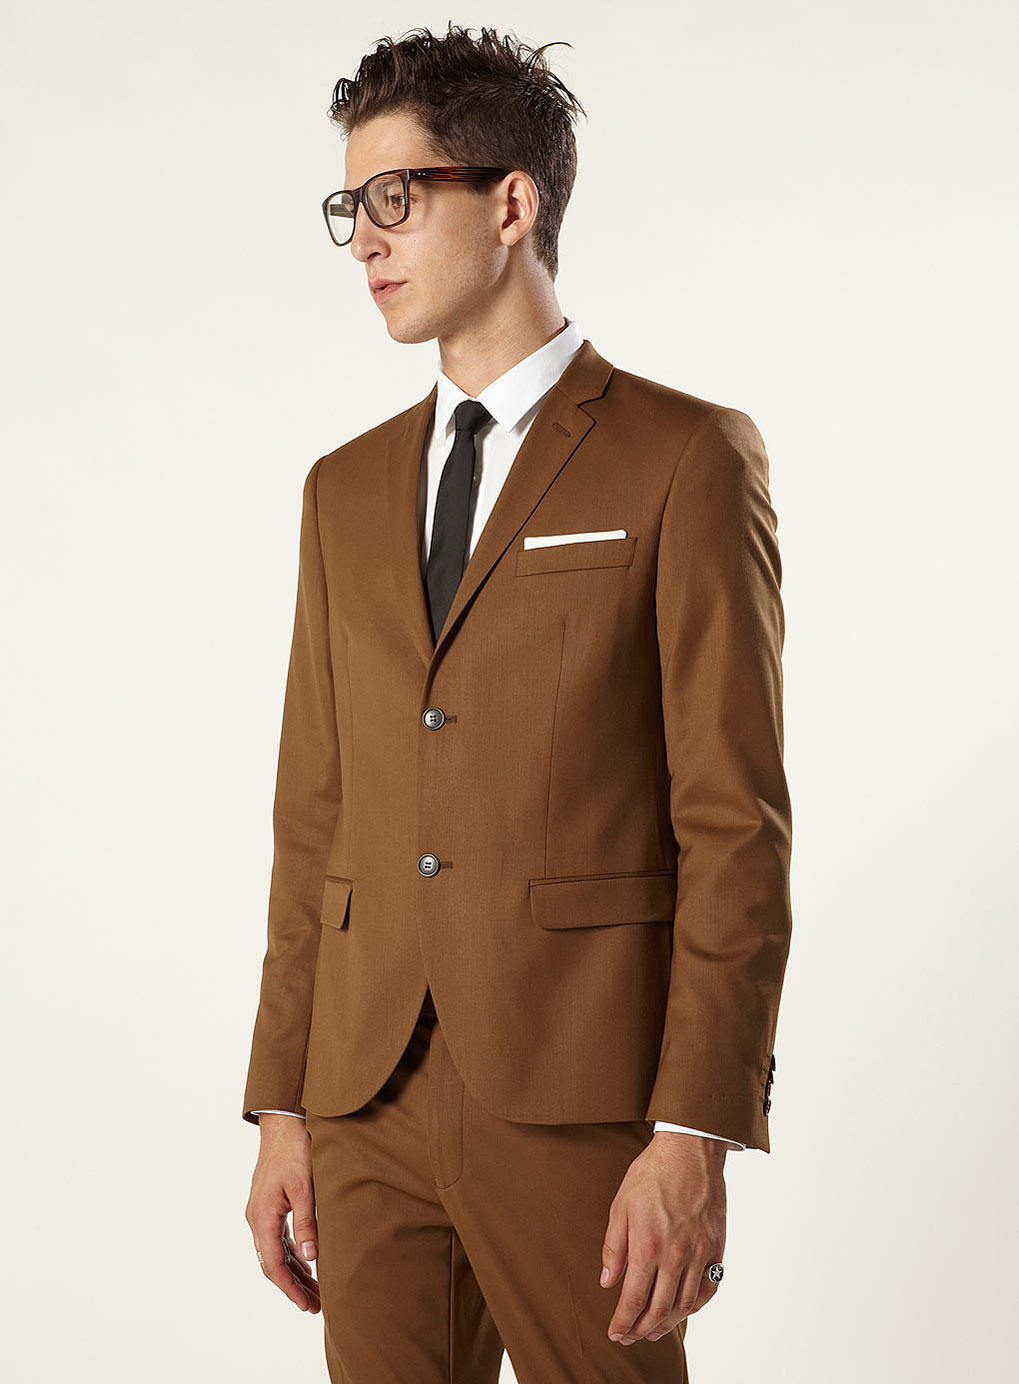 Fudge Brown Skinny Suit | Fashion Groom